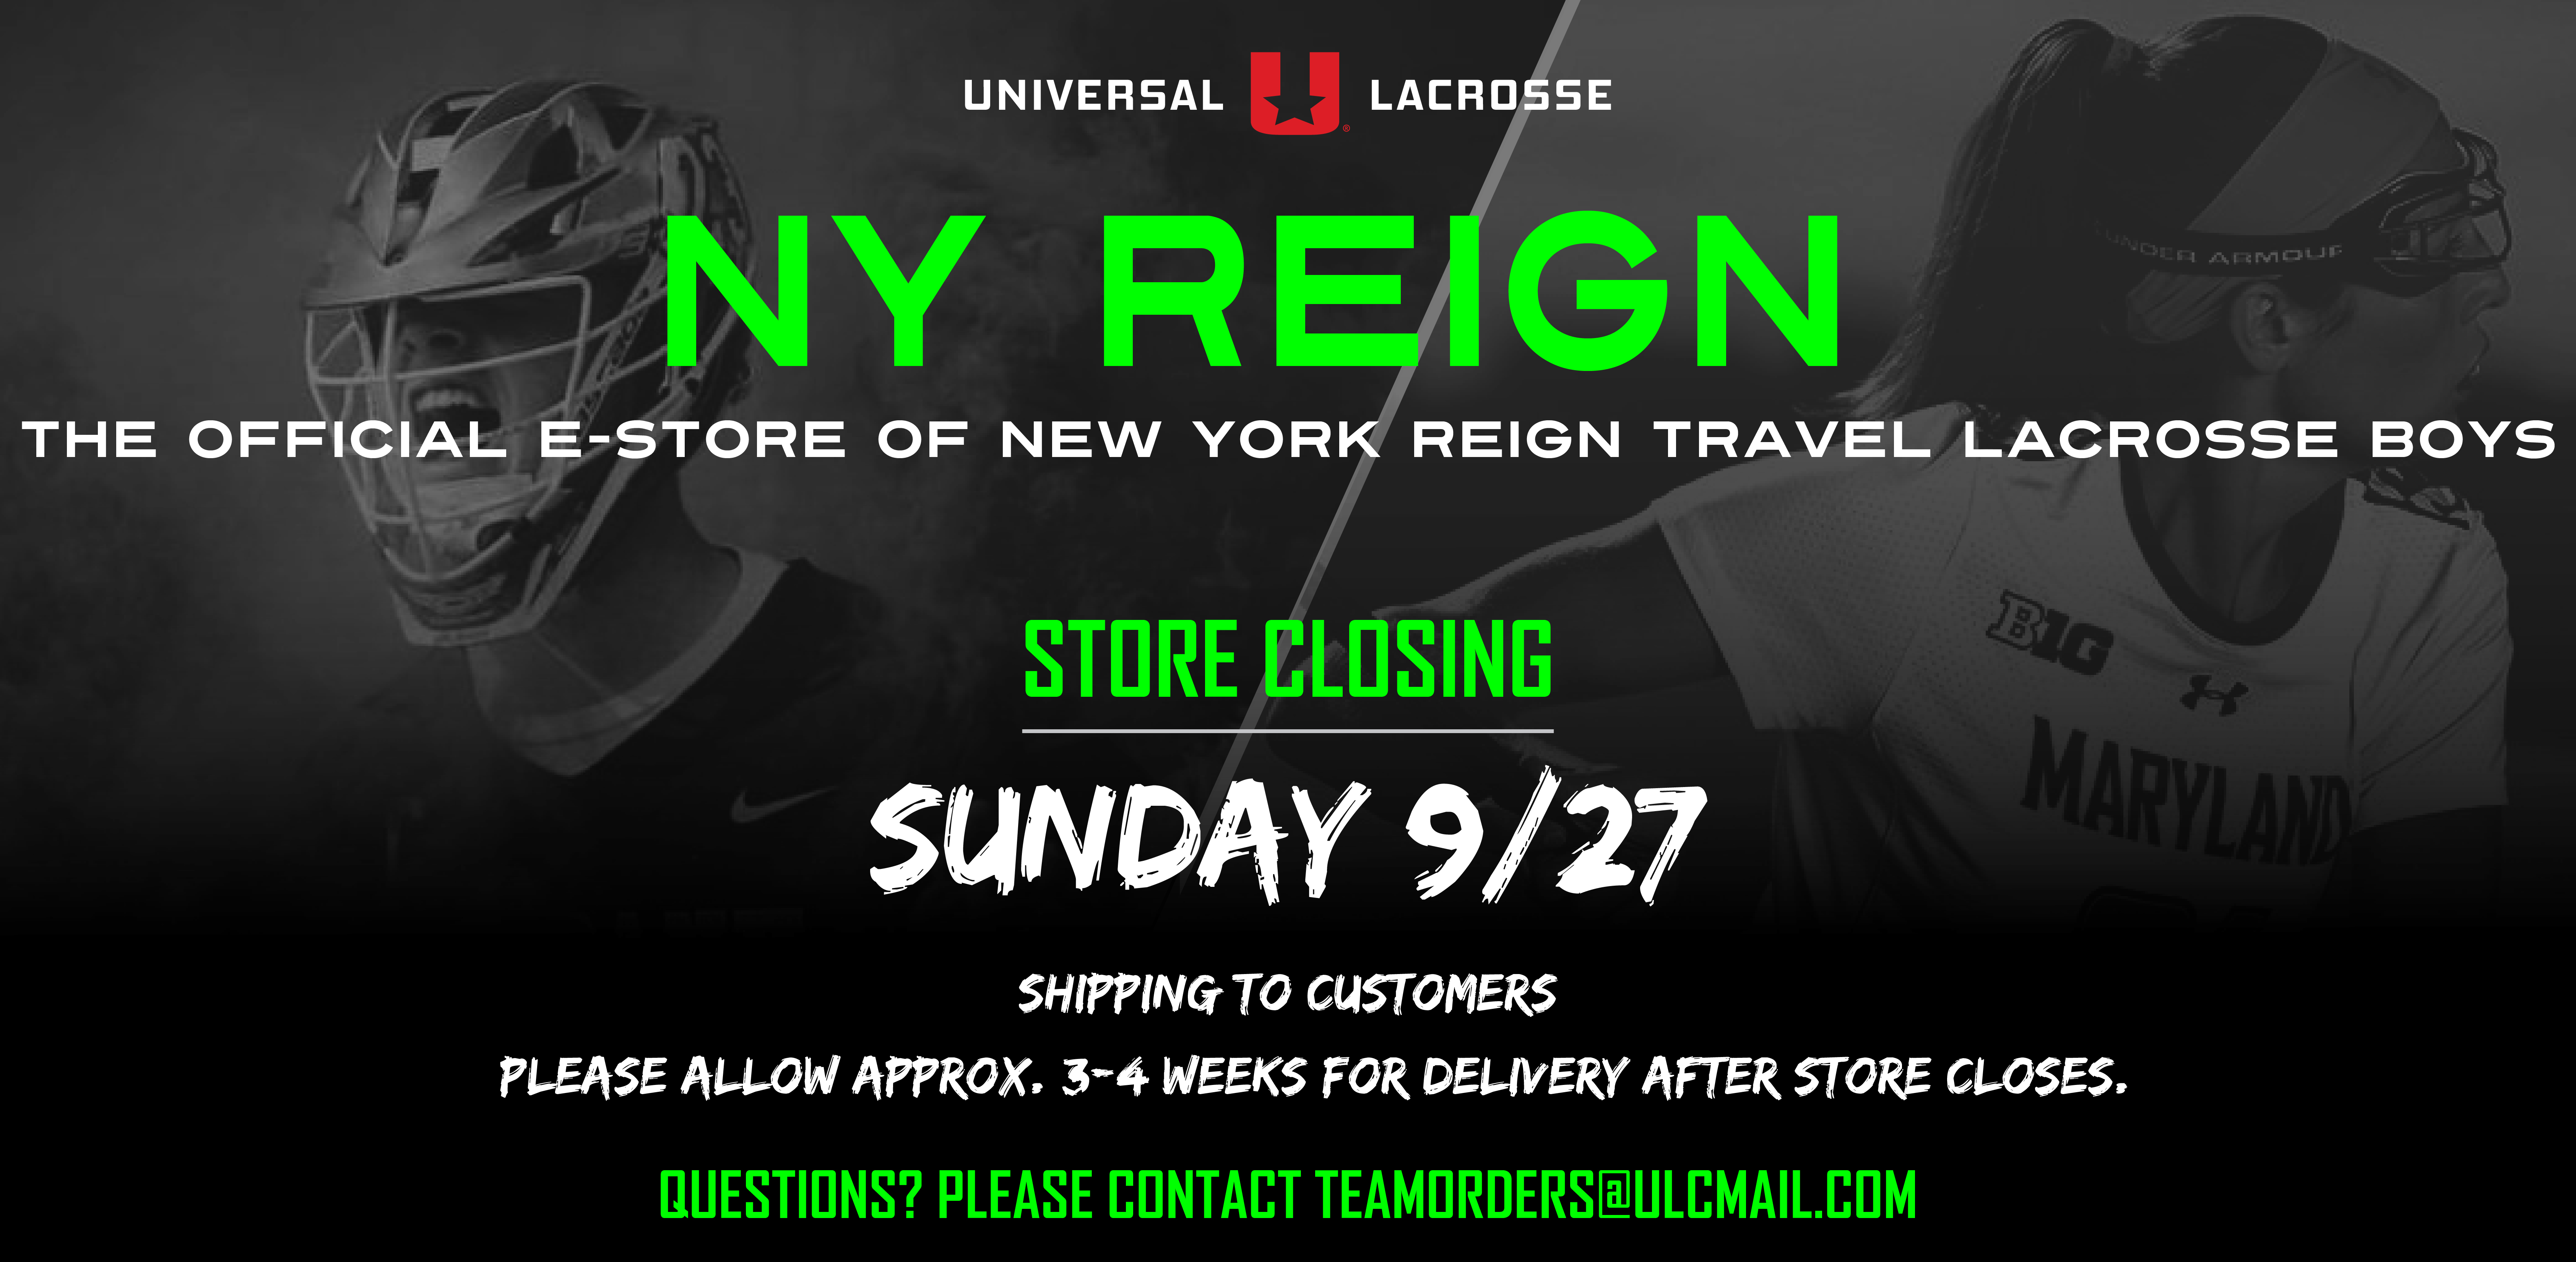 NY Reign Lacrosse